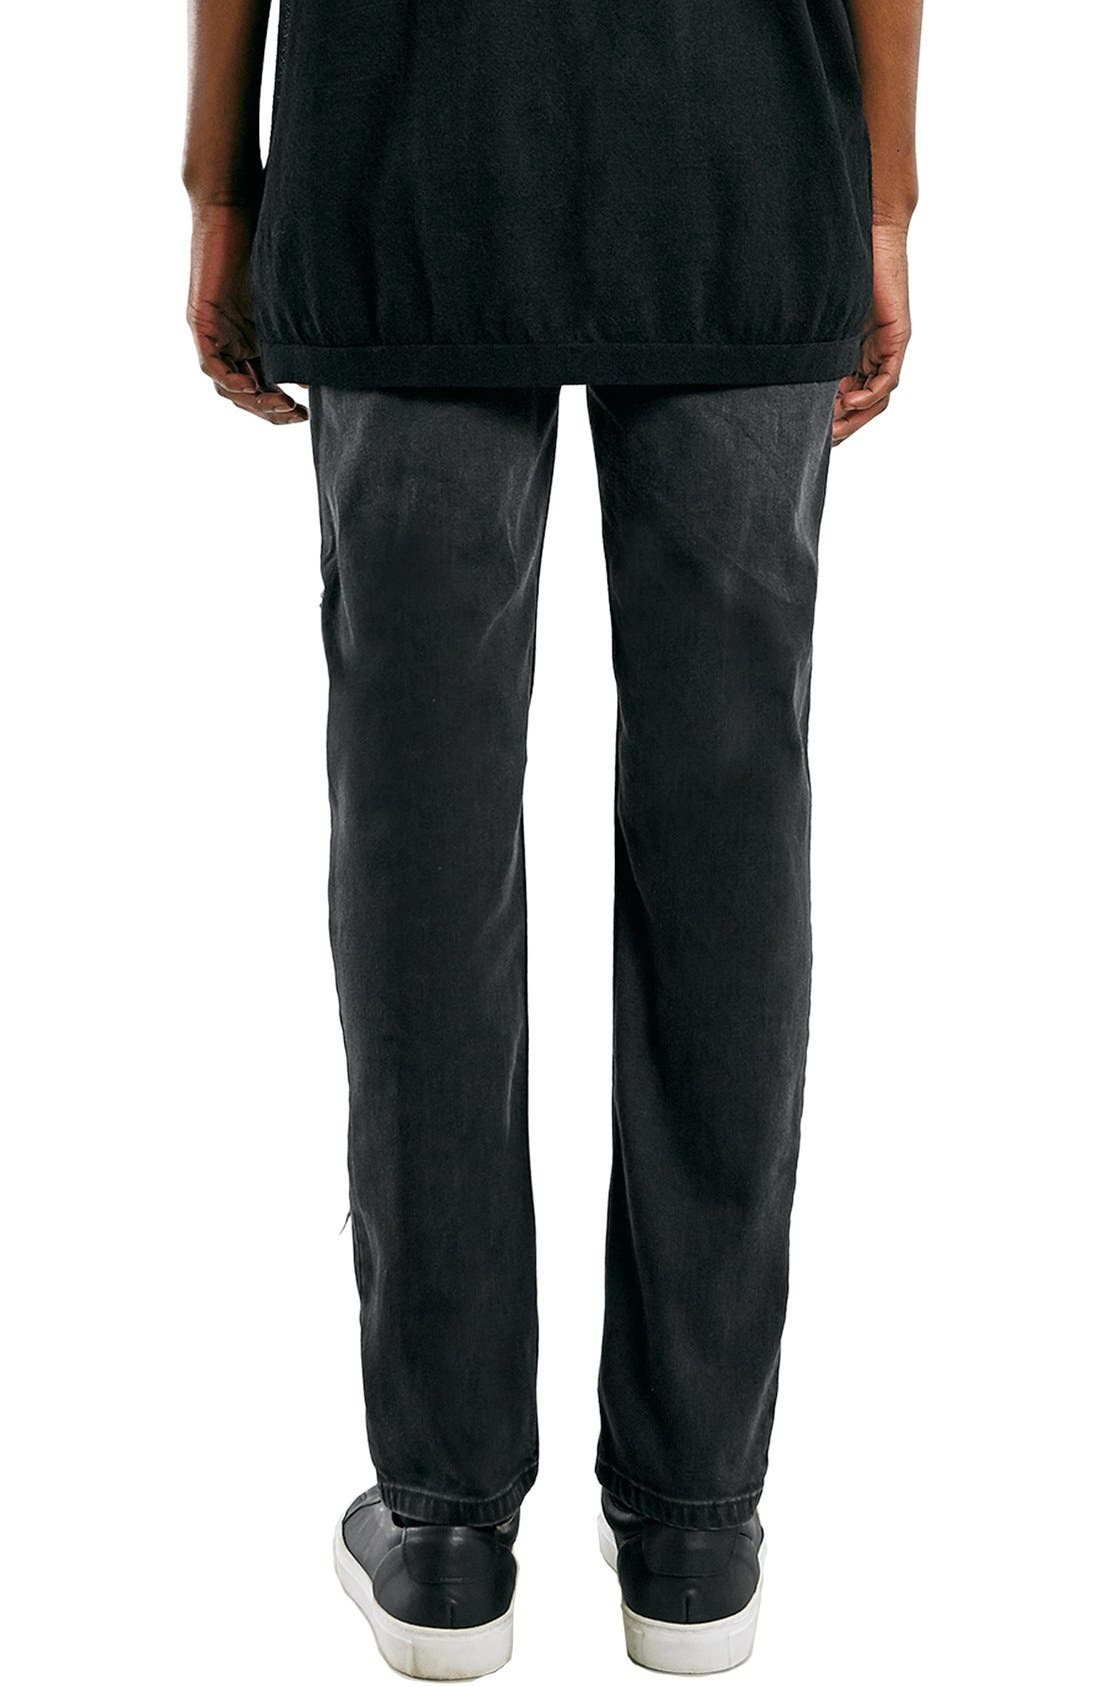 'AAA Collection' Shredded Stretch Skinny Fit Jeans,                             Alternate thumbnail 3, color,                             001